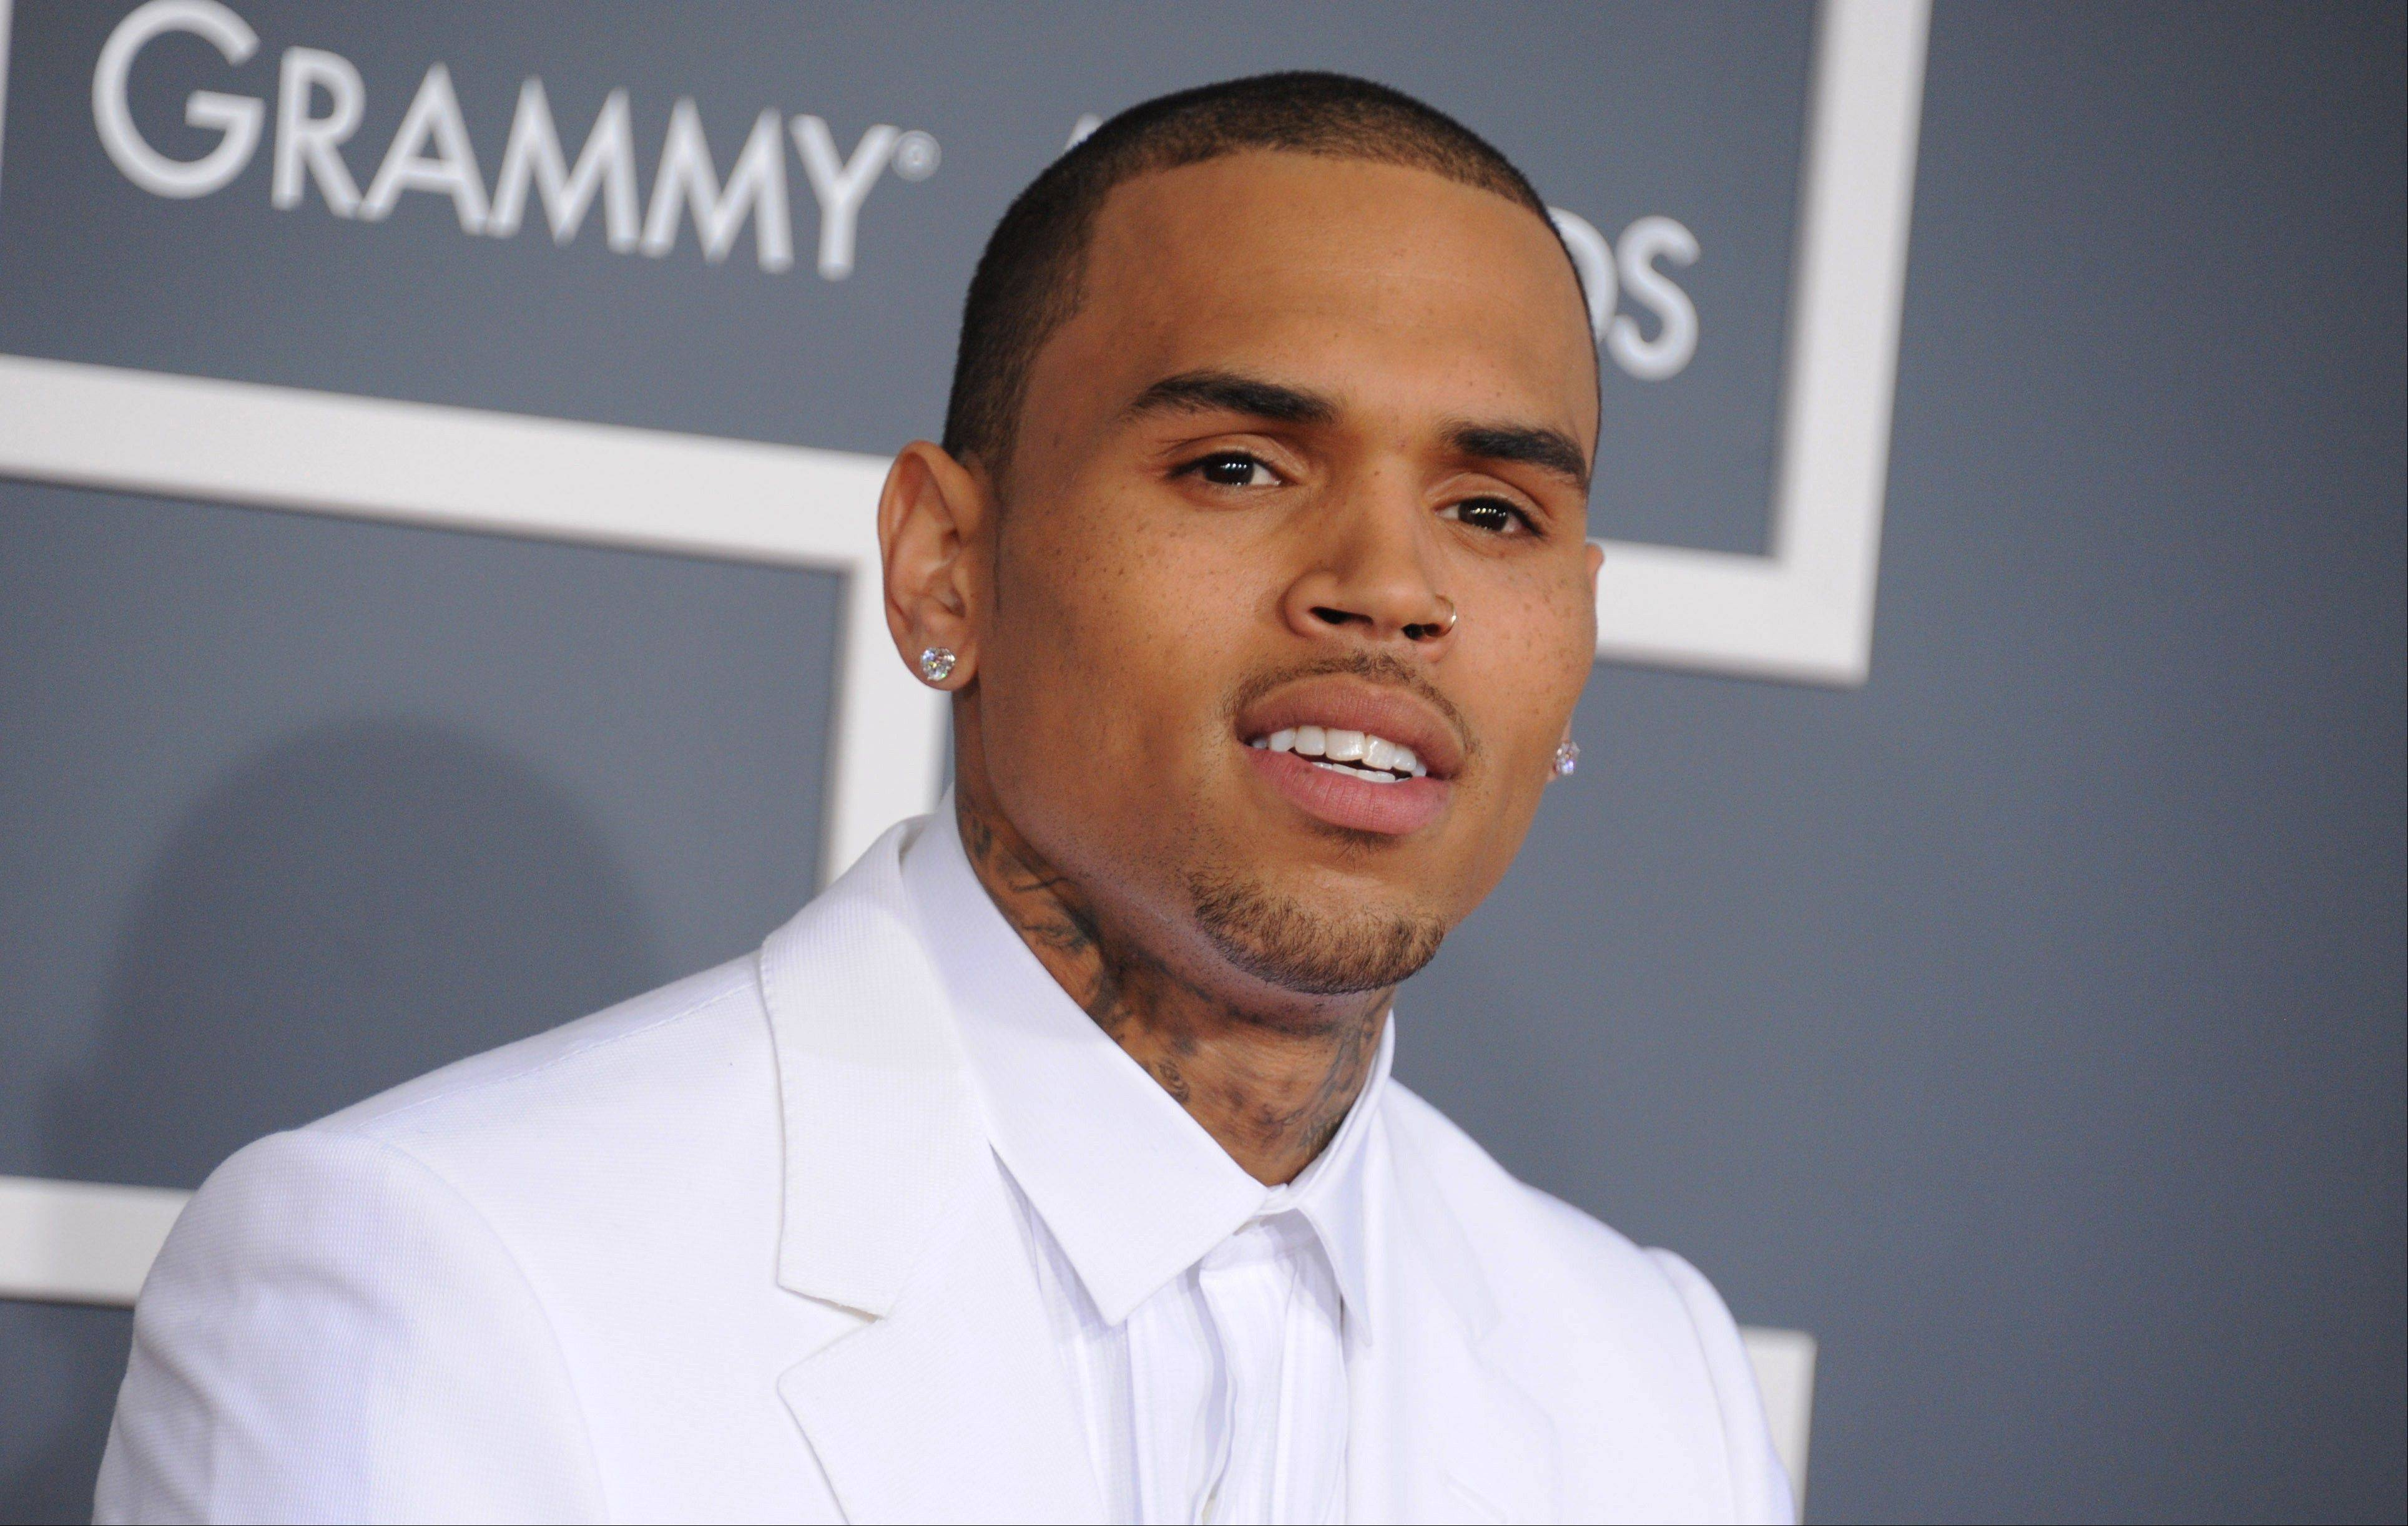 Chris Brown was arrested early Sunday in Washington after a fight broke out near the W Hotel near the White House.